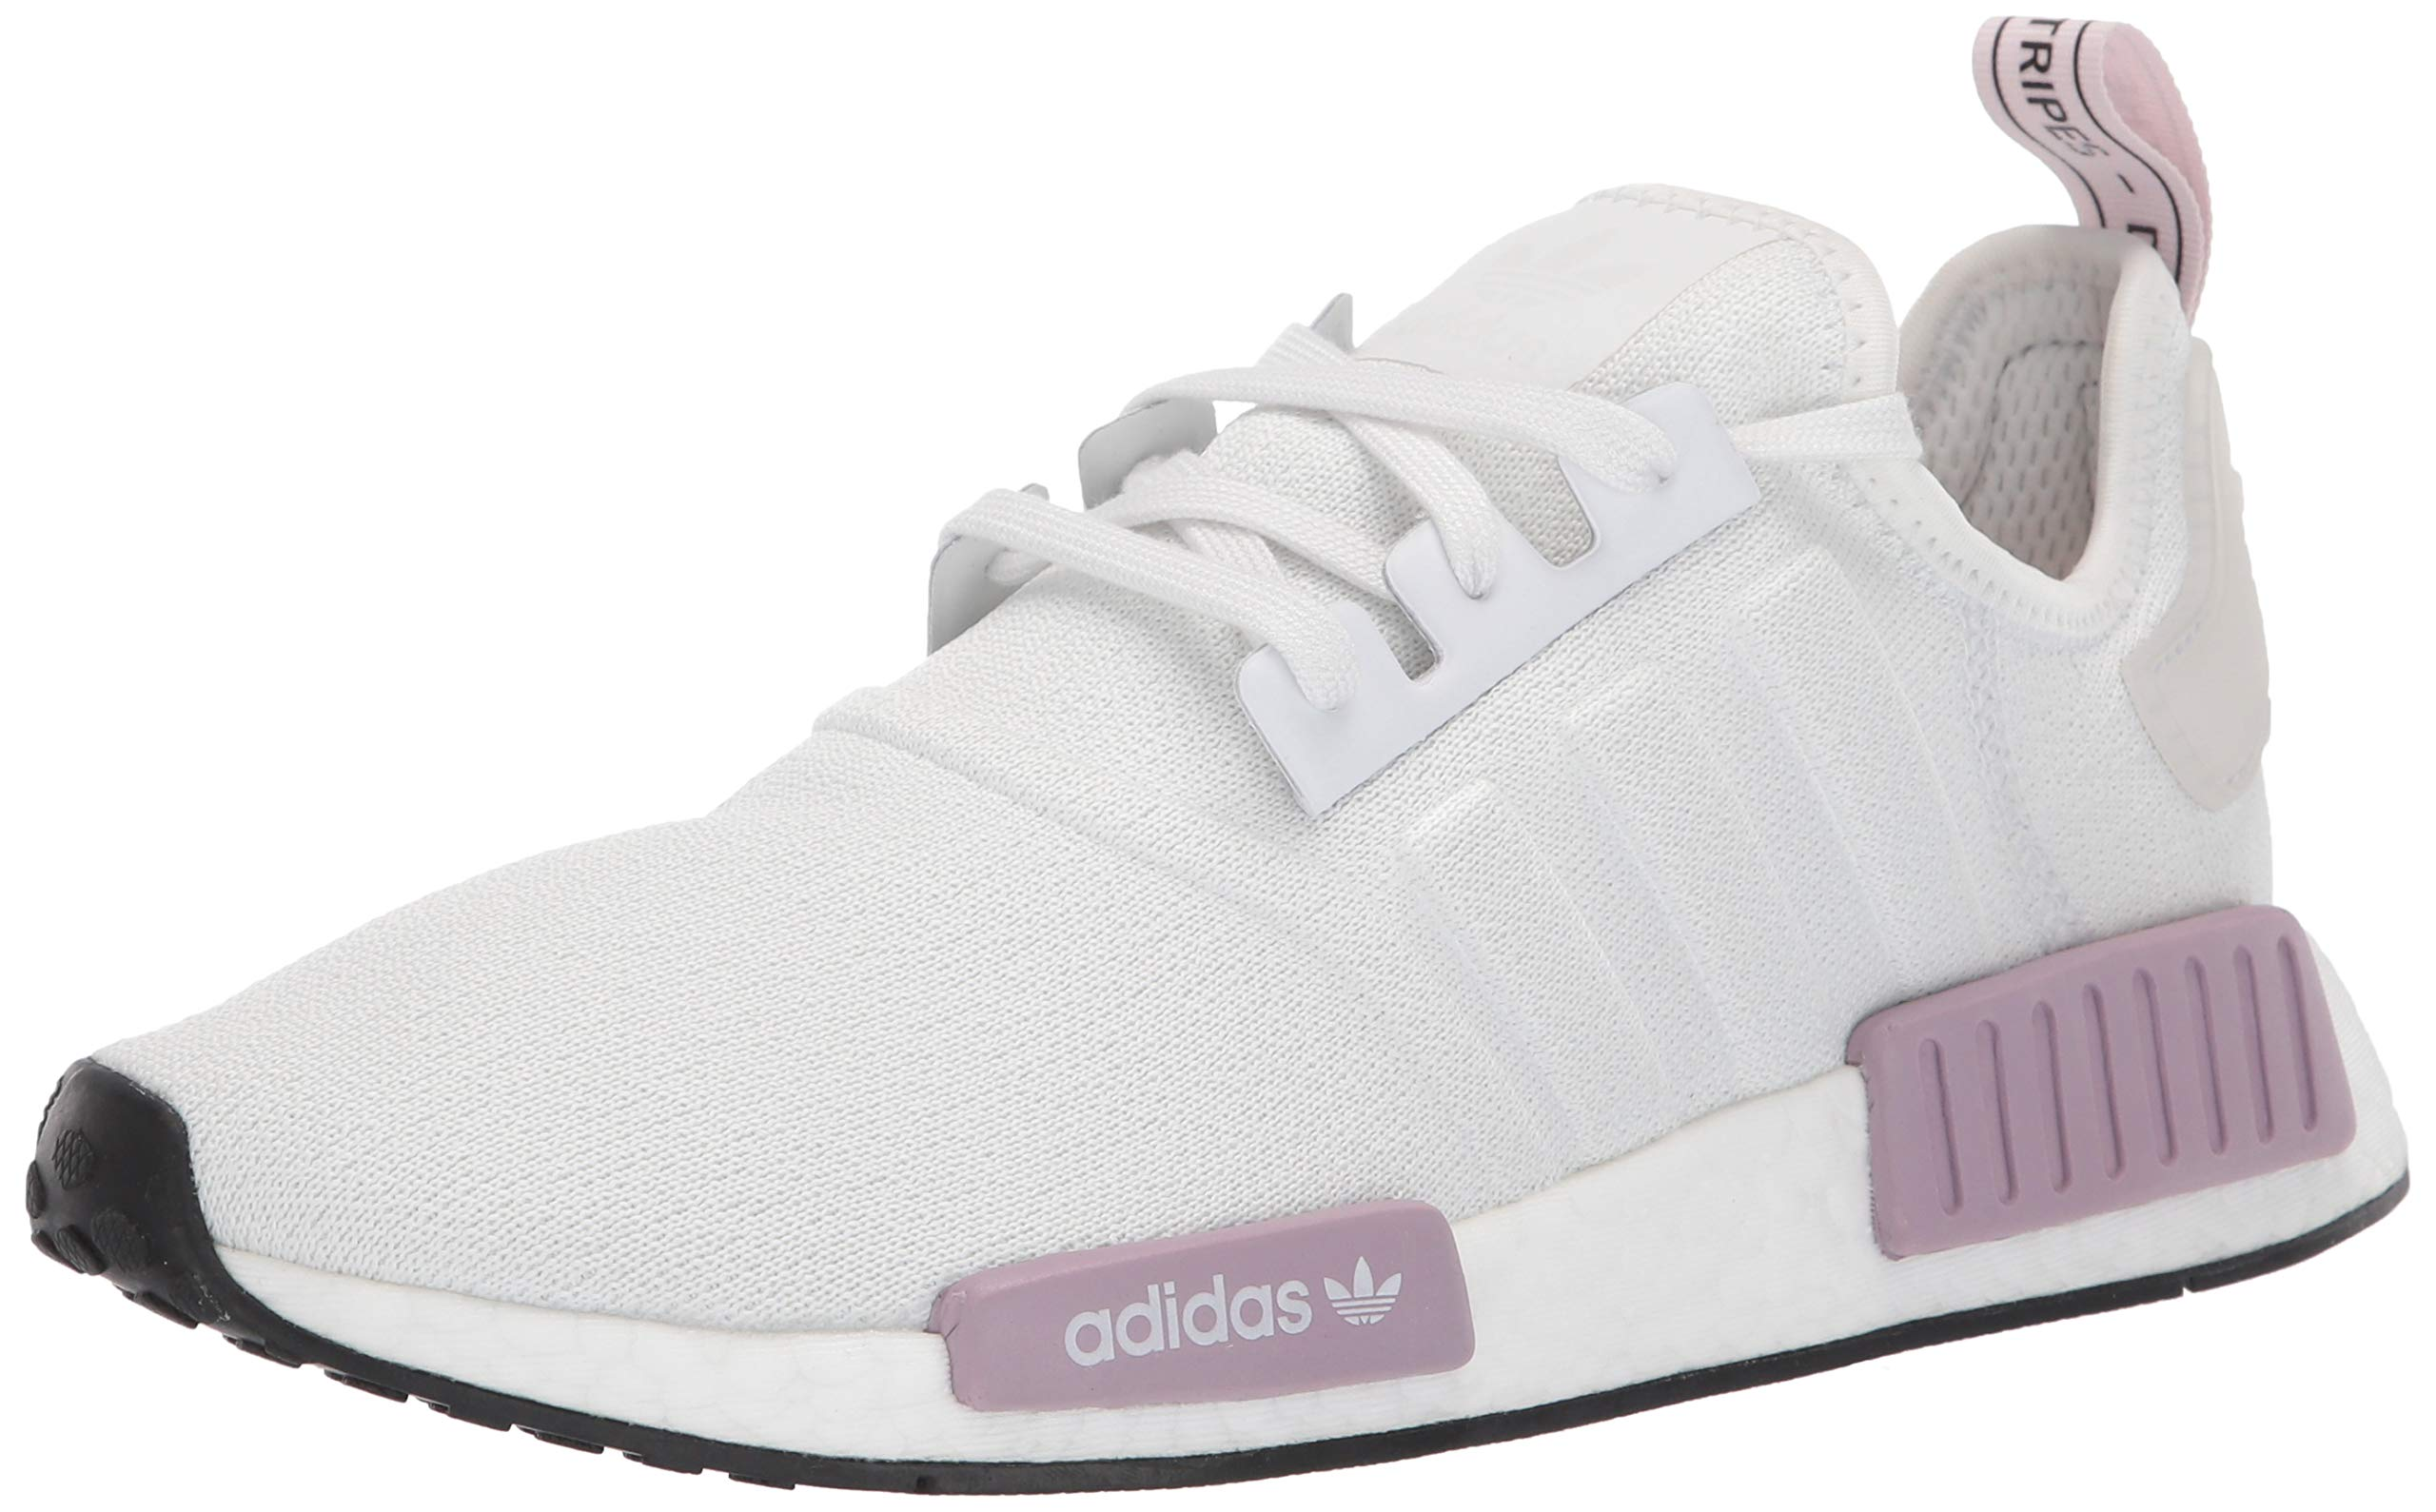 adidas Originals Women's NMD_R1 Running Shoe Crystal White/Orchid Tint, 7.5 M US